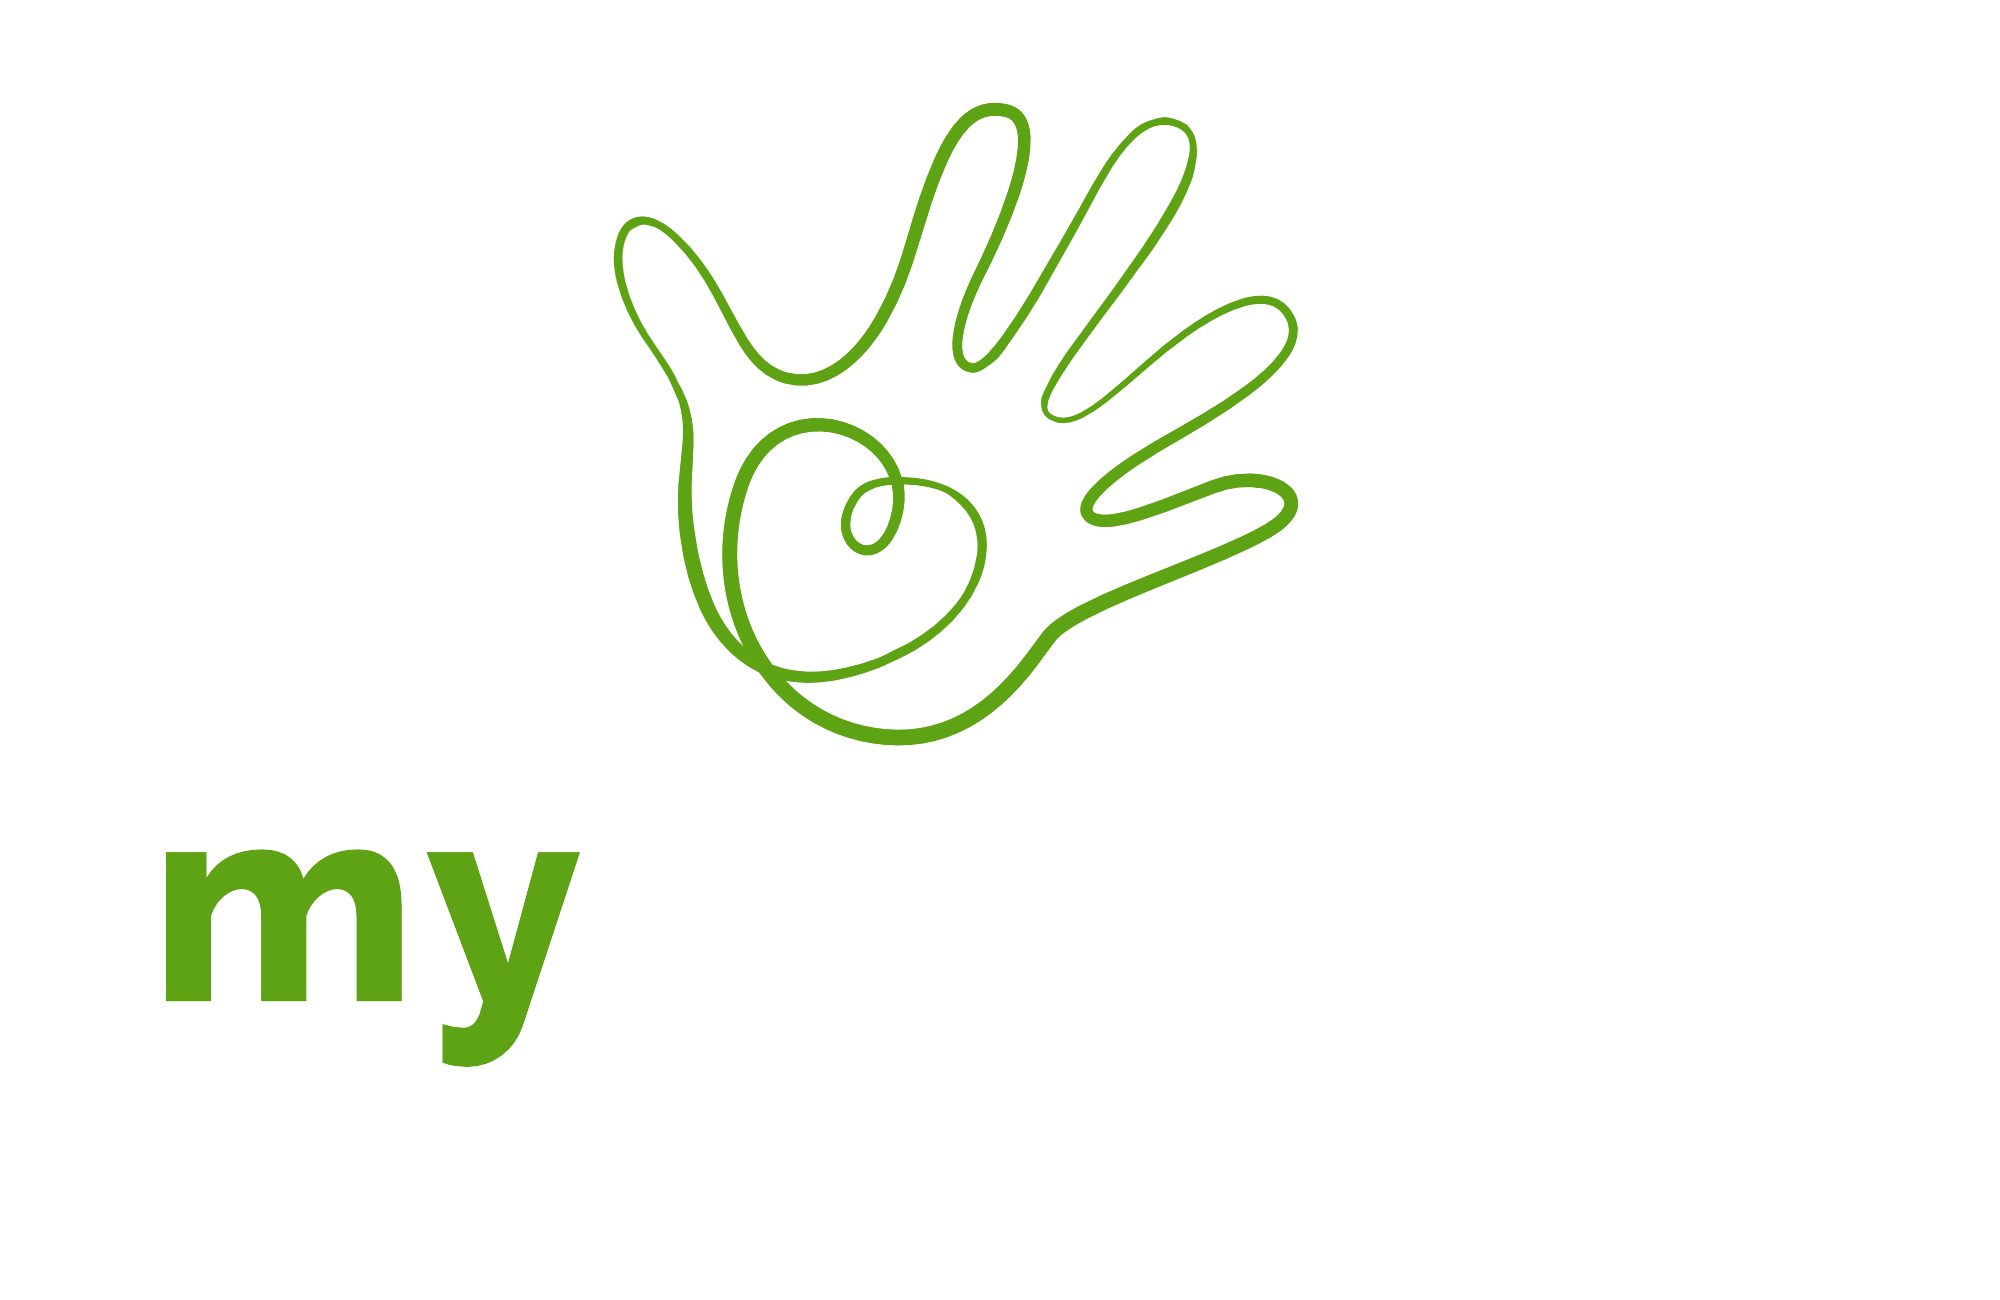 myWhanau-white-logo-phonetic